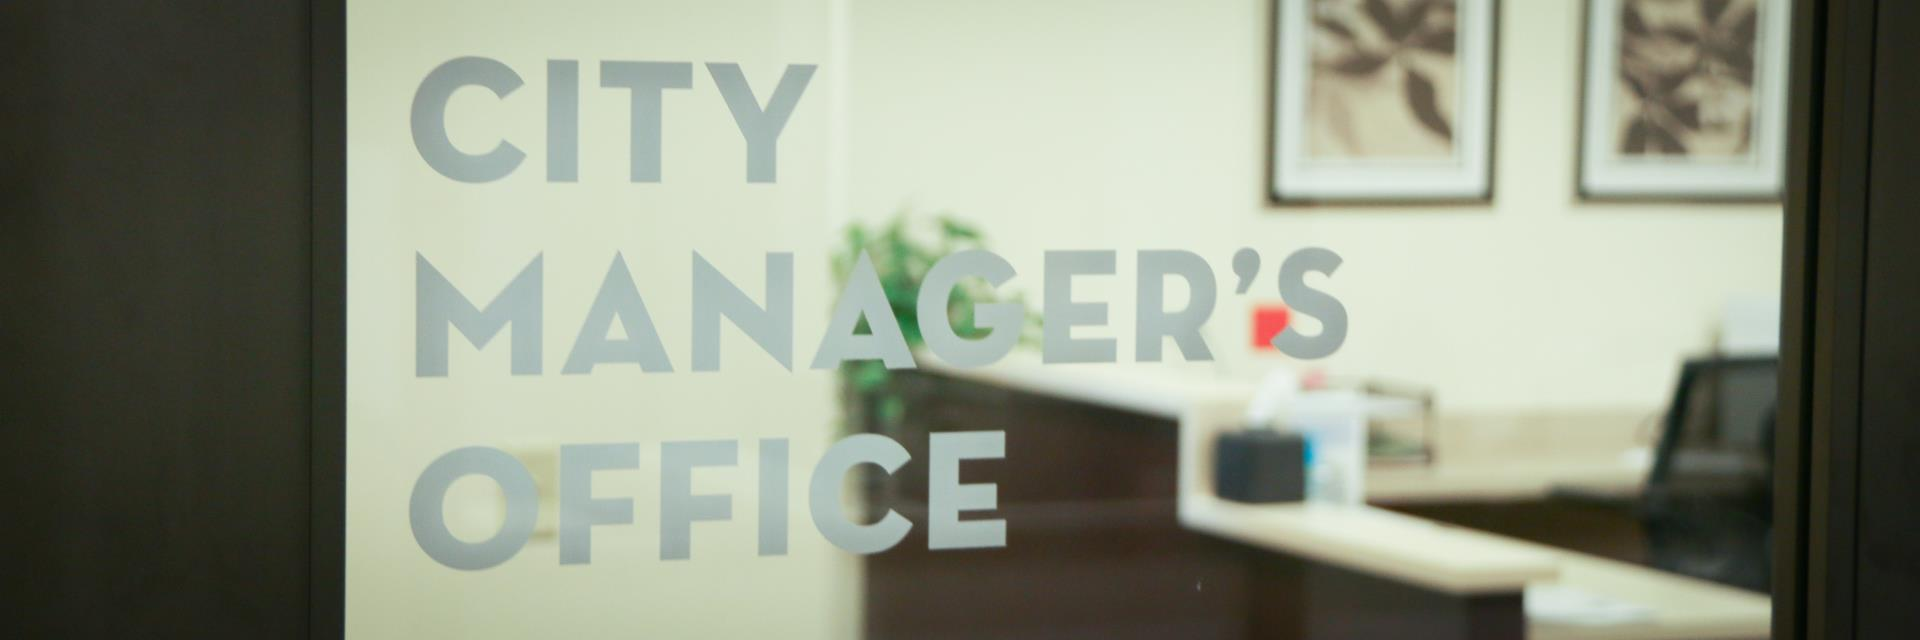 City Manager's Office-3